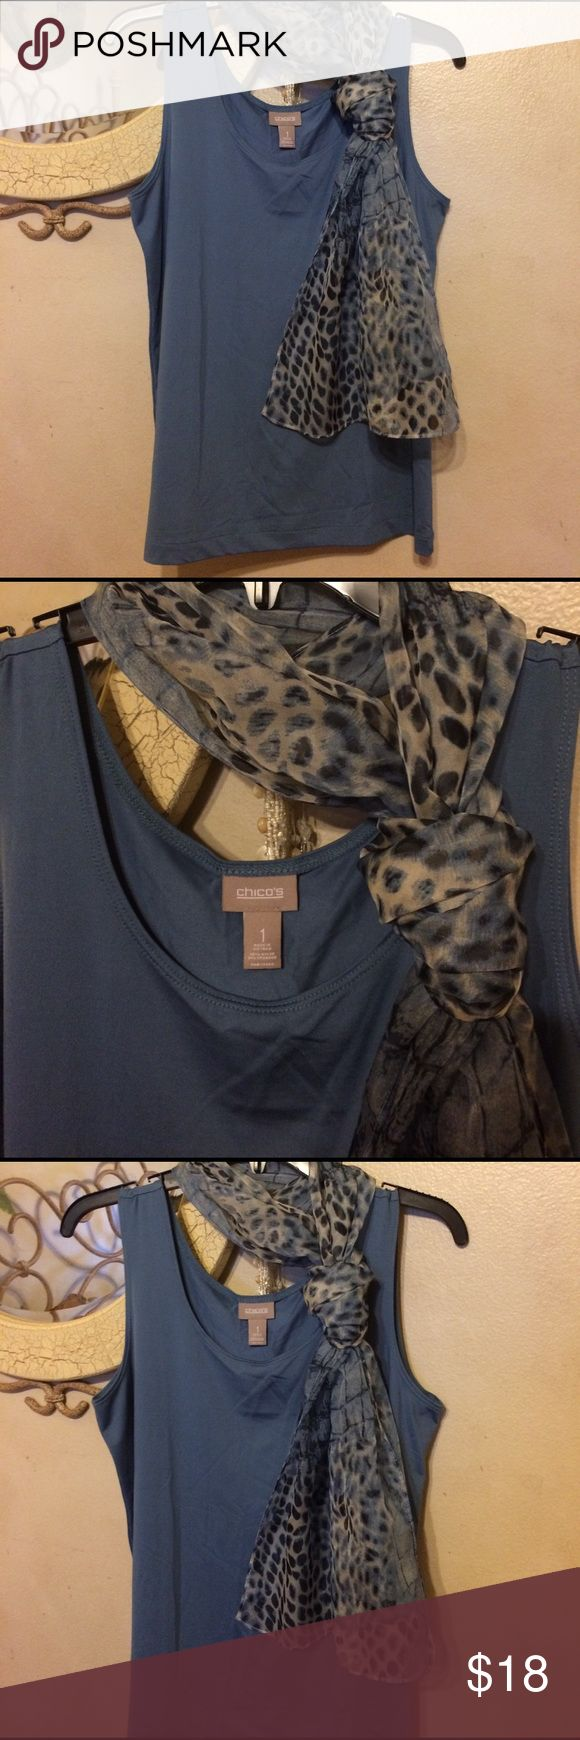 Chicos slate blue tank and alligator print scarf Chicos blue tank and matching alligator skin print blue and white scarf tank size Chicos 1 both NWOT Chico's Tops Camisoles